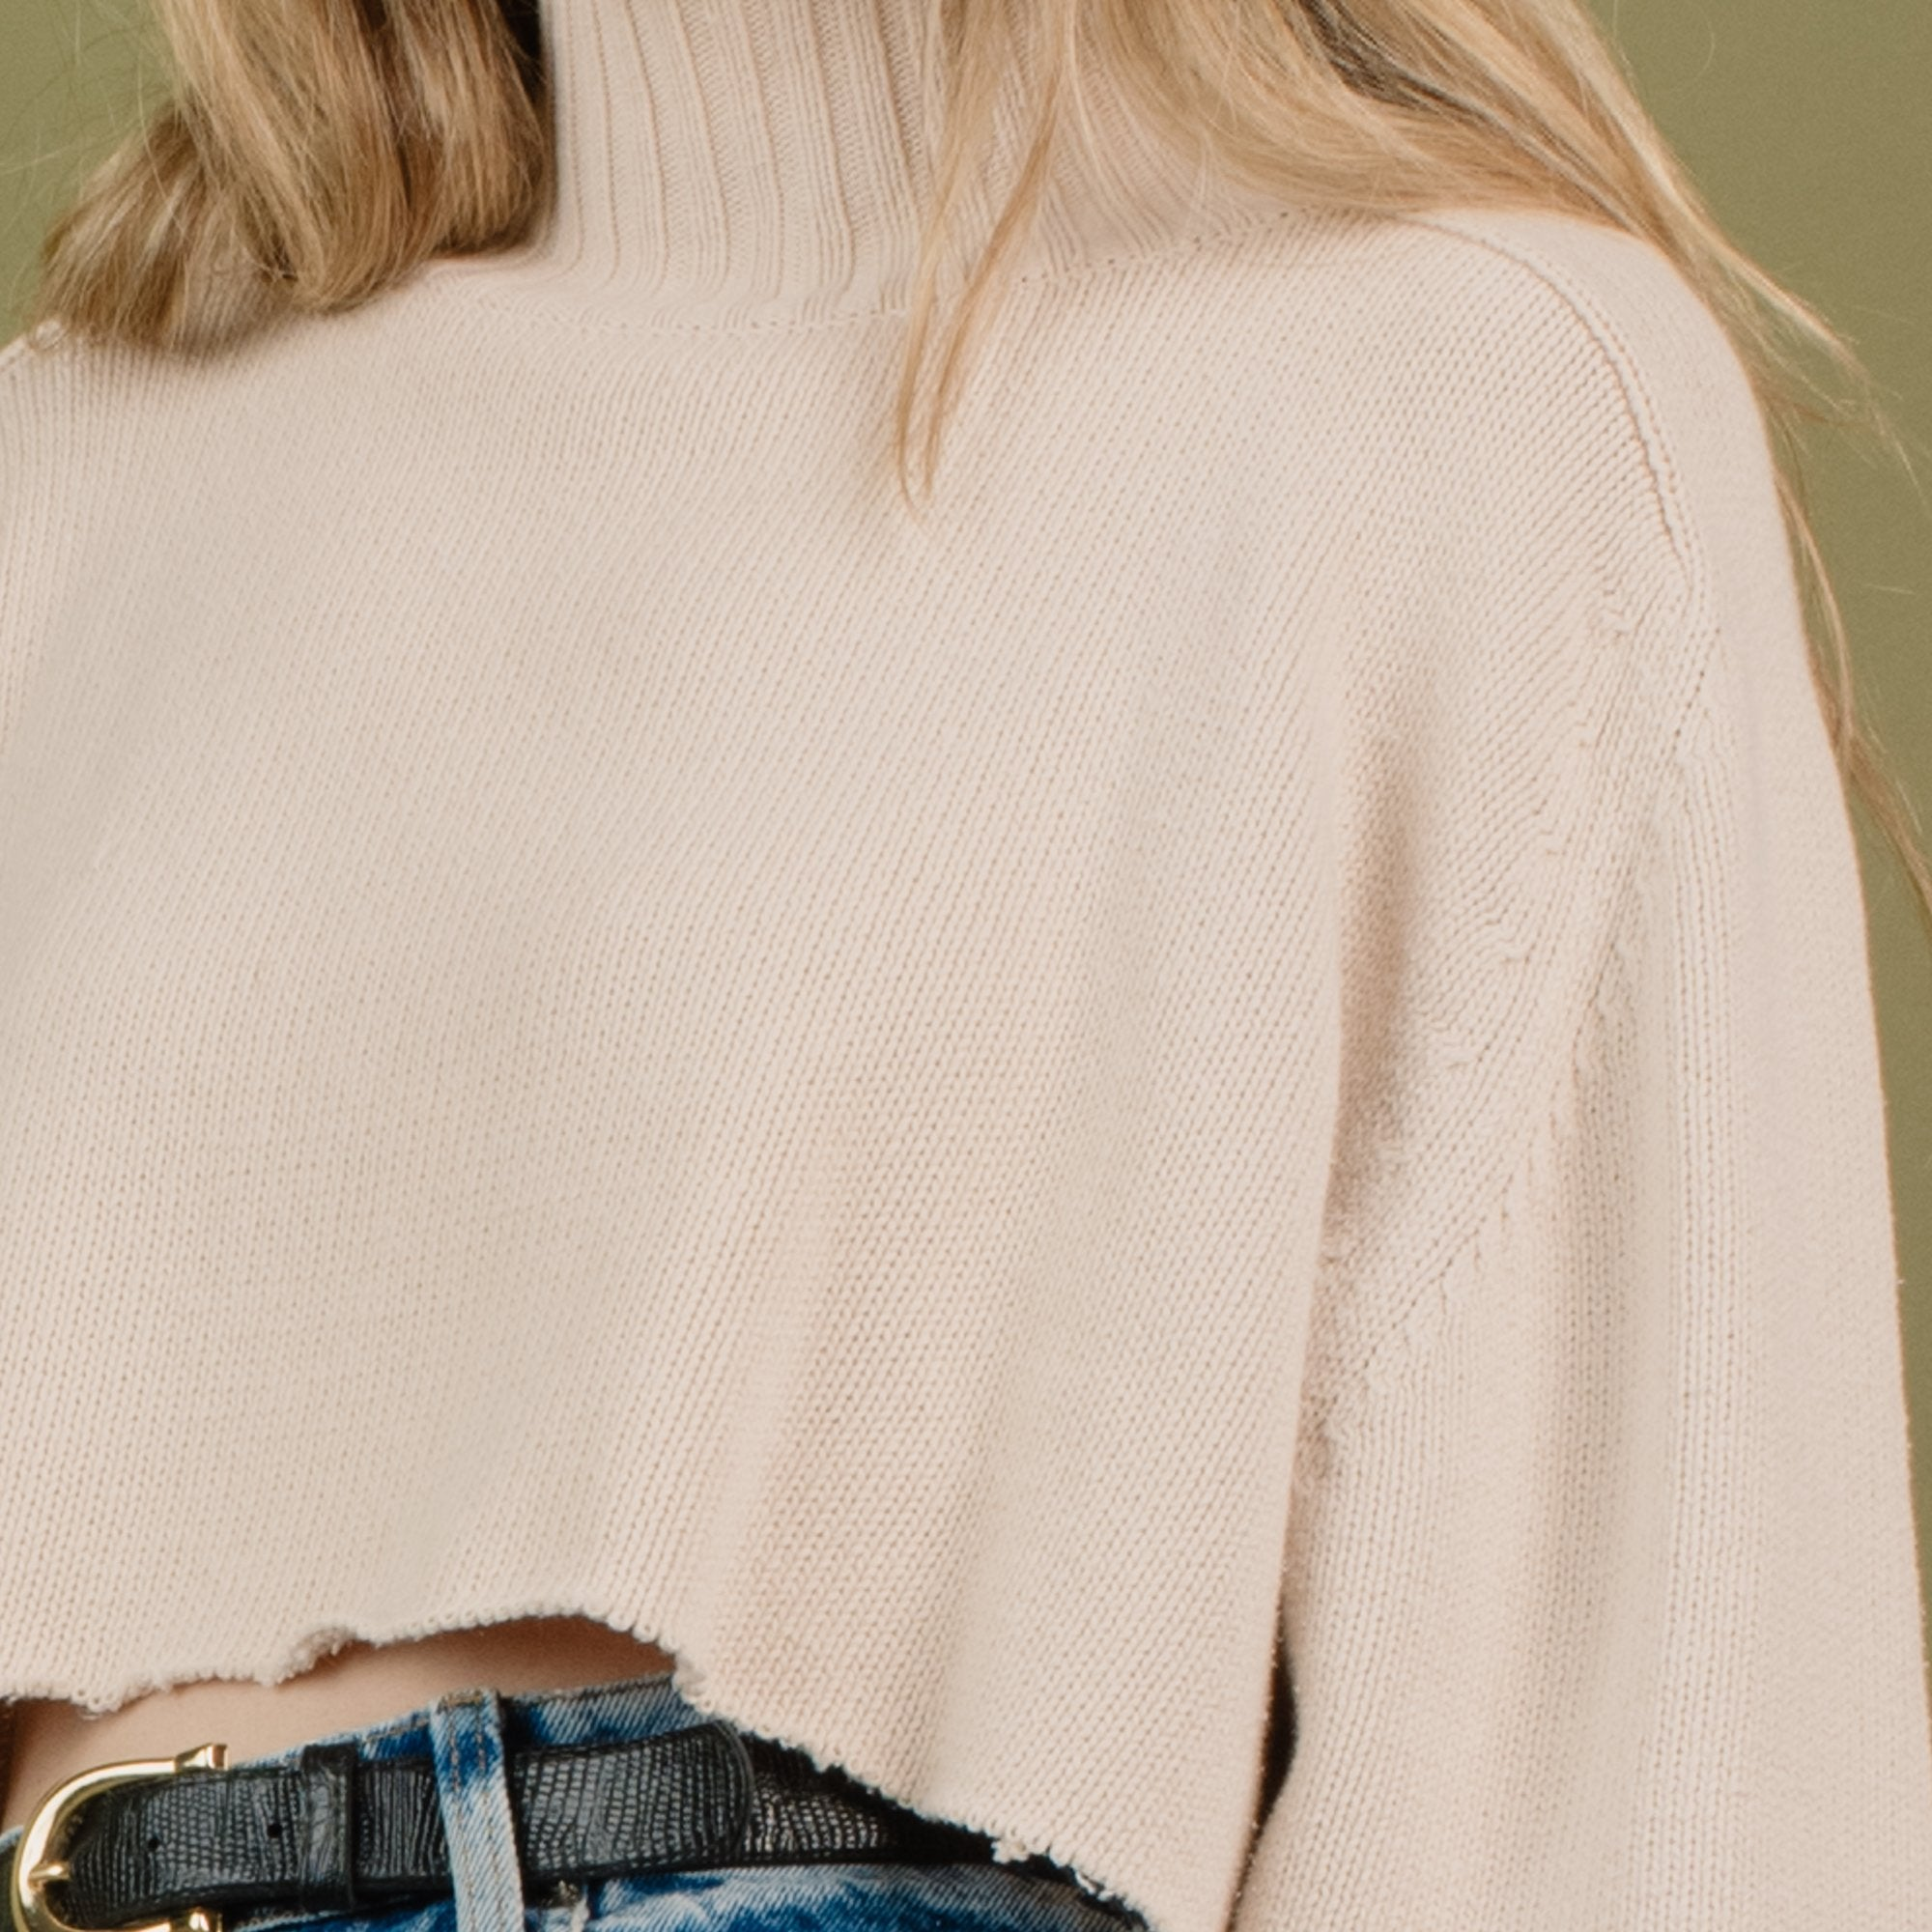 Vintage Oversized Creme Cropped Knit Sweater / S - Closed Caption